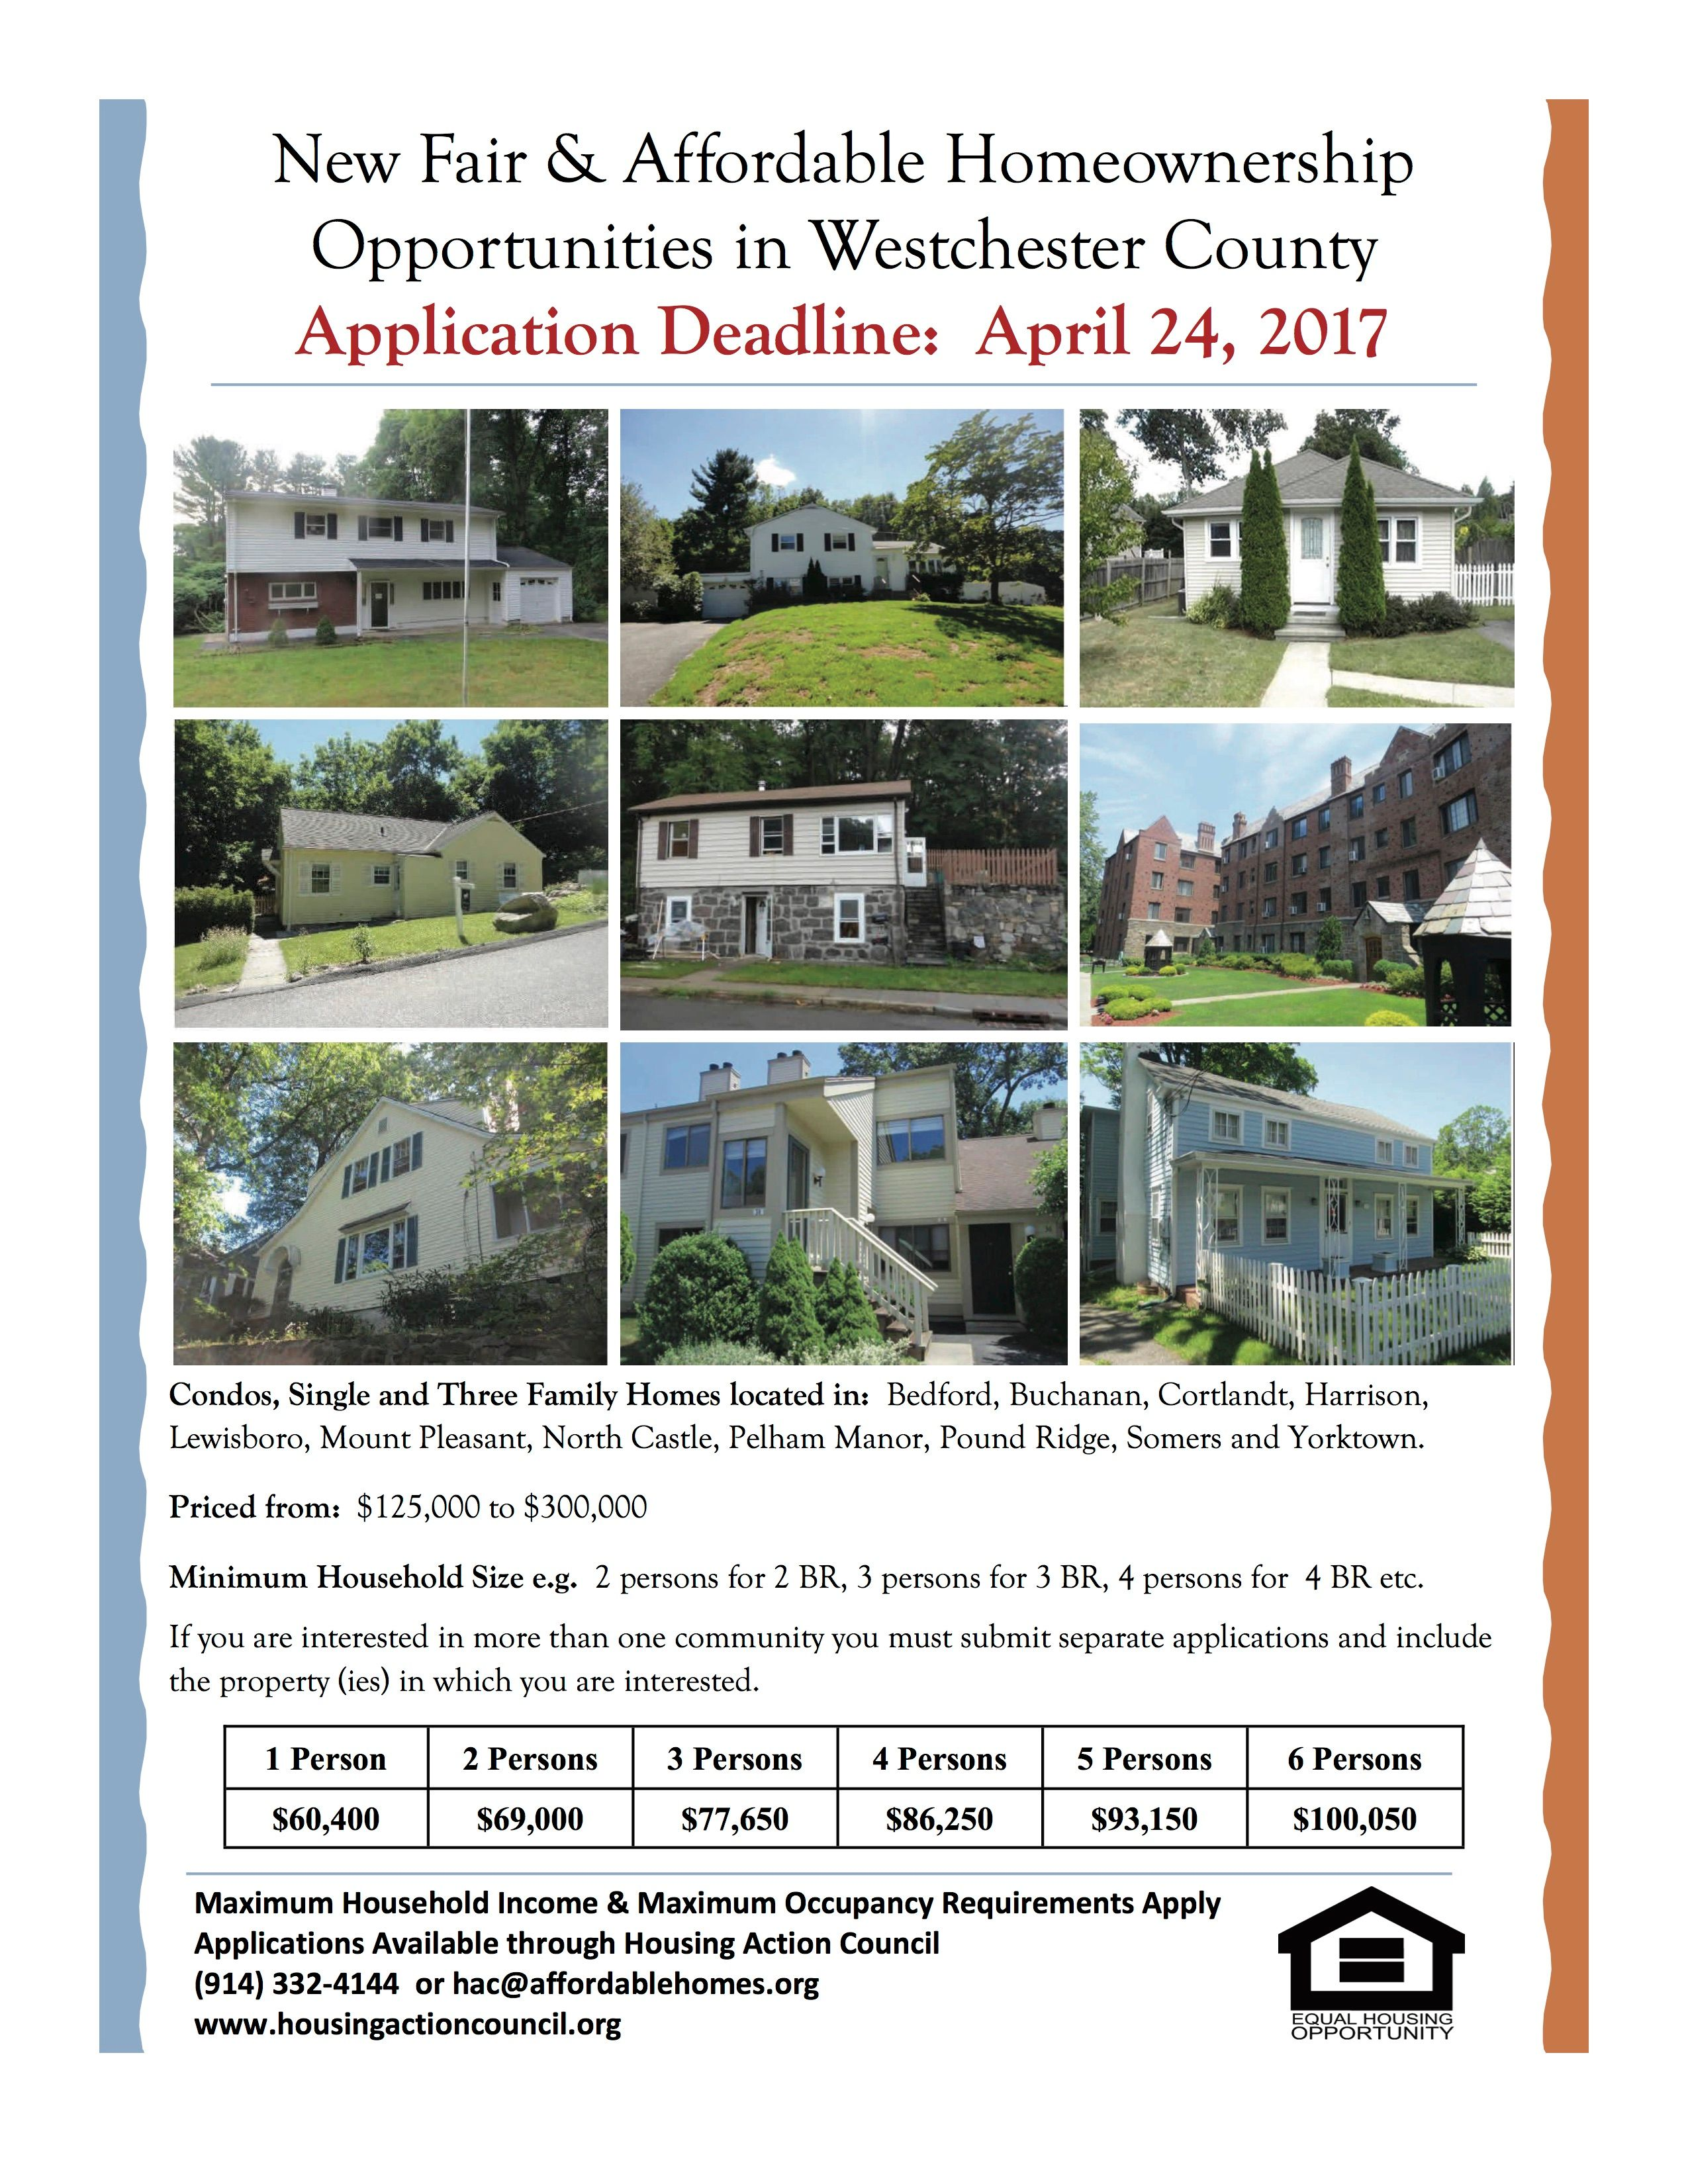 Affordable Homeownership Opportunities in Westchester